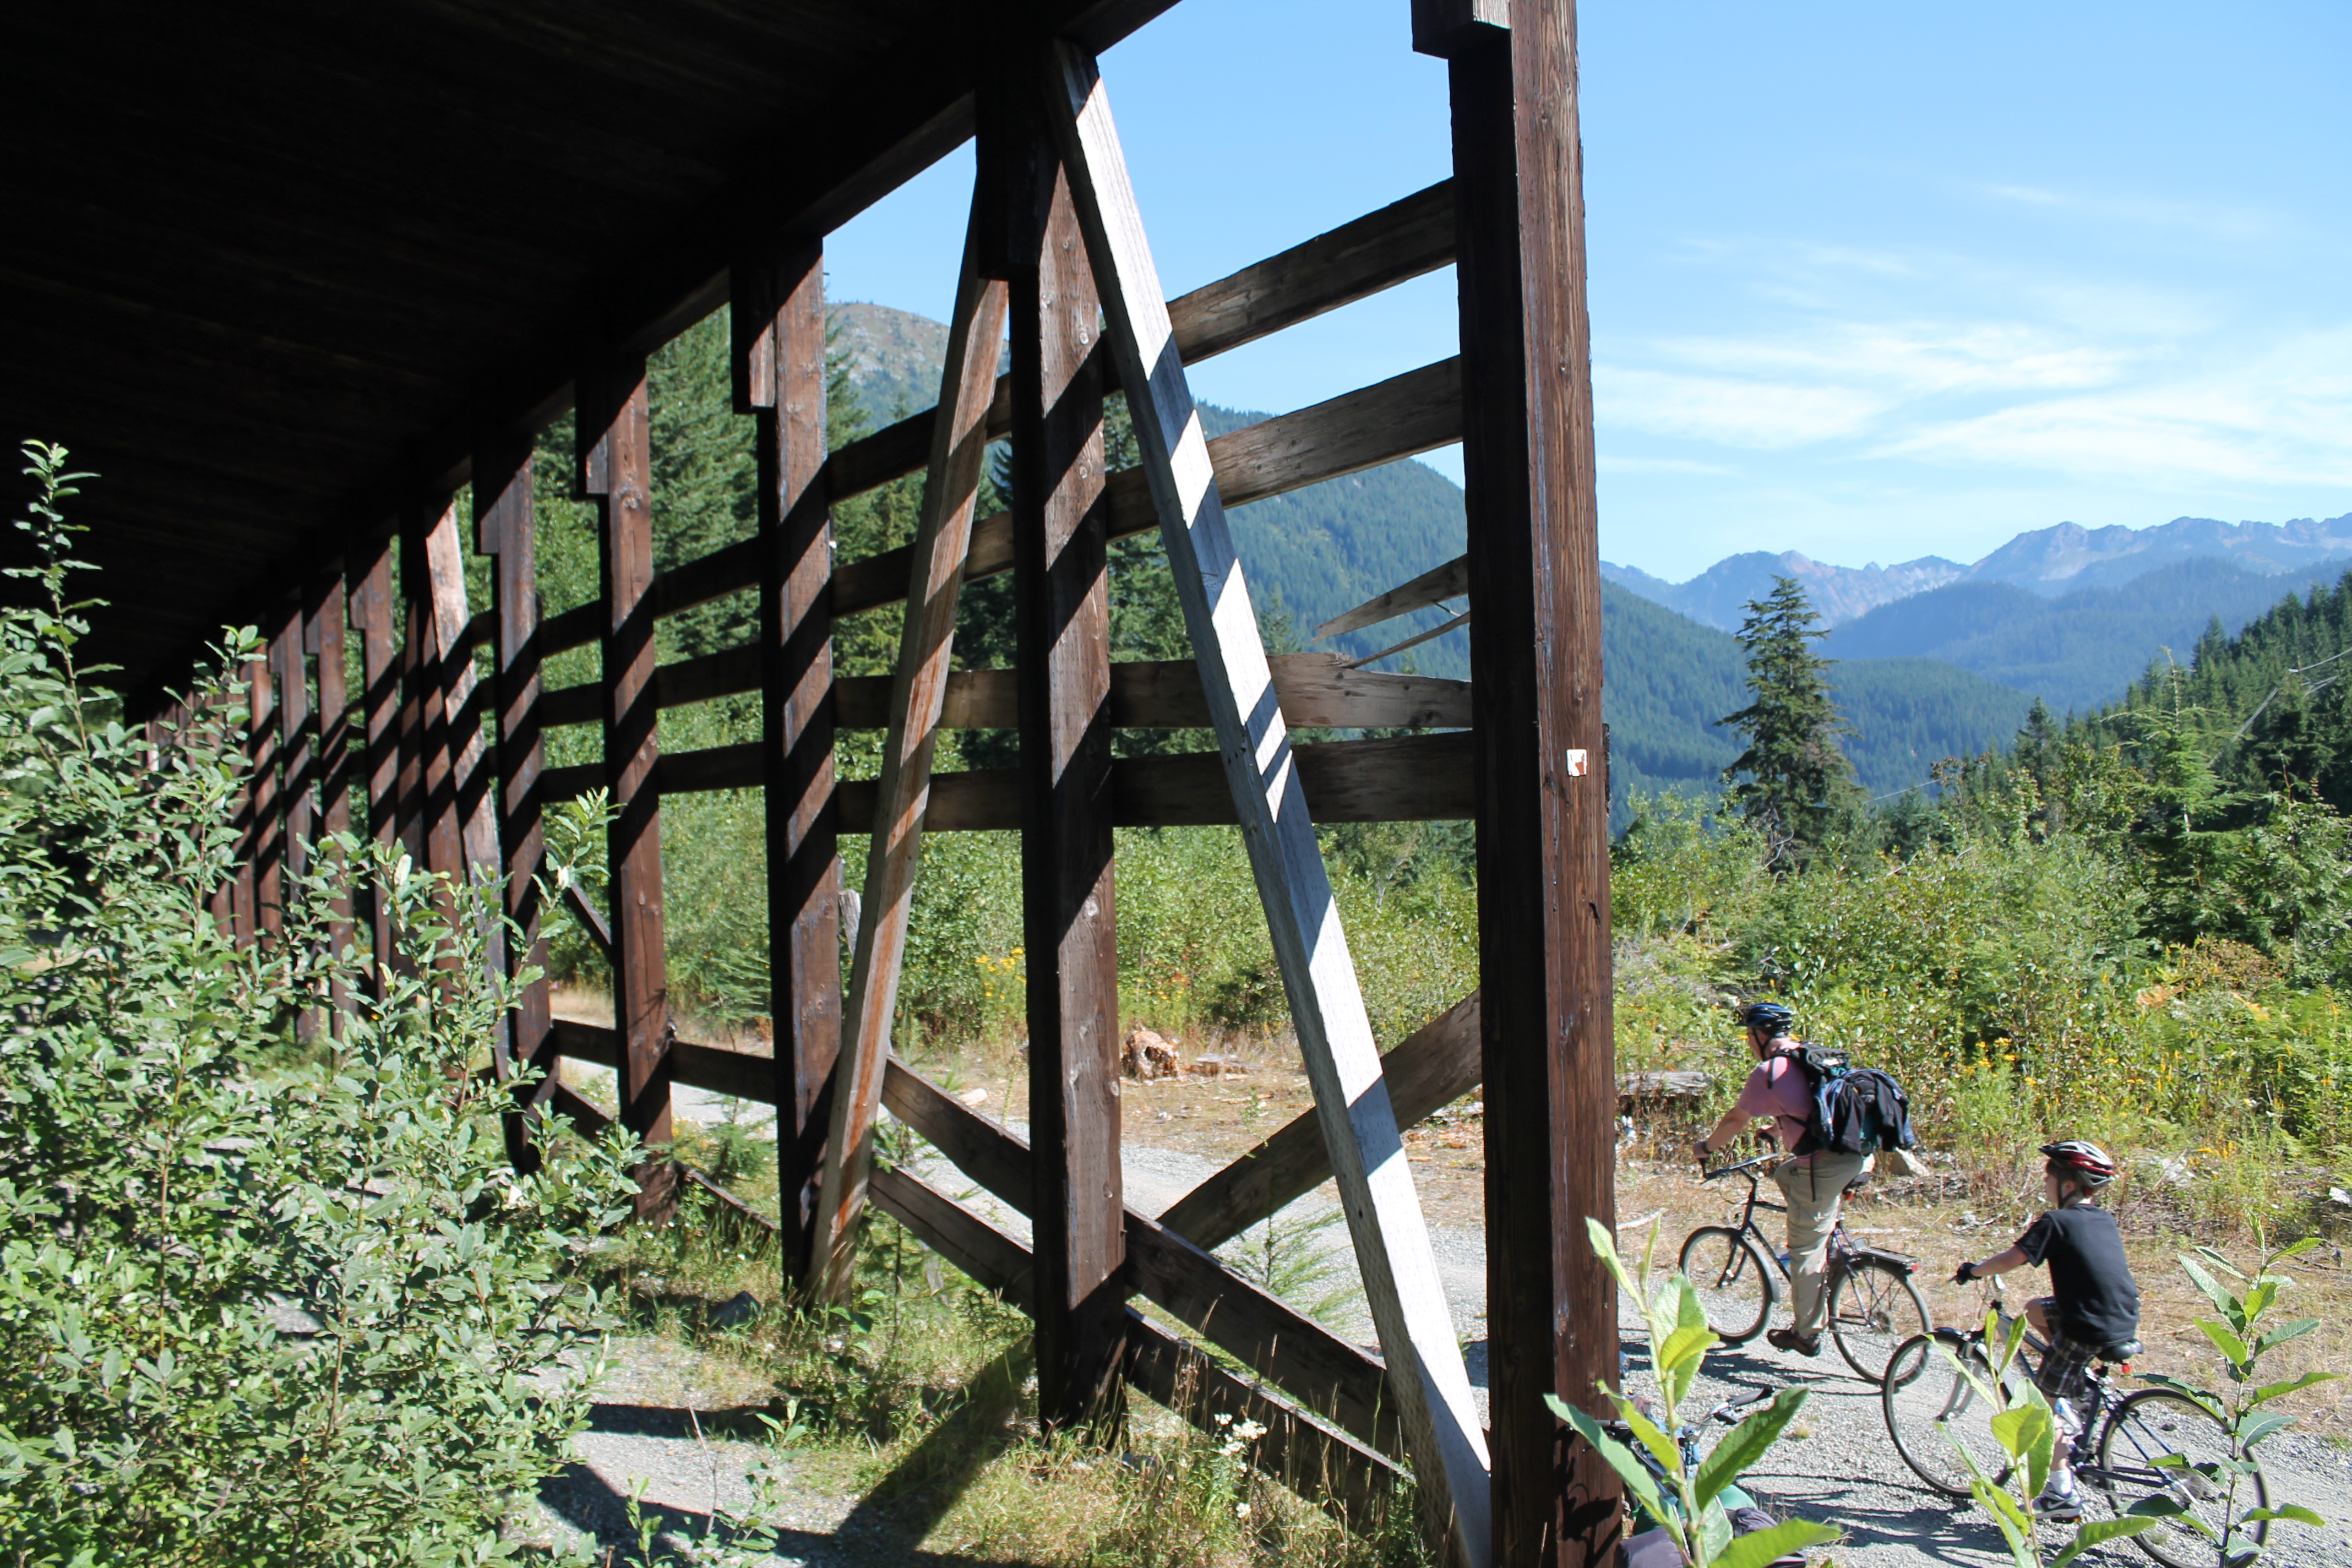 Bicycle Shuttle Service To Snoqualmie Tunnel Launches On